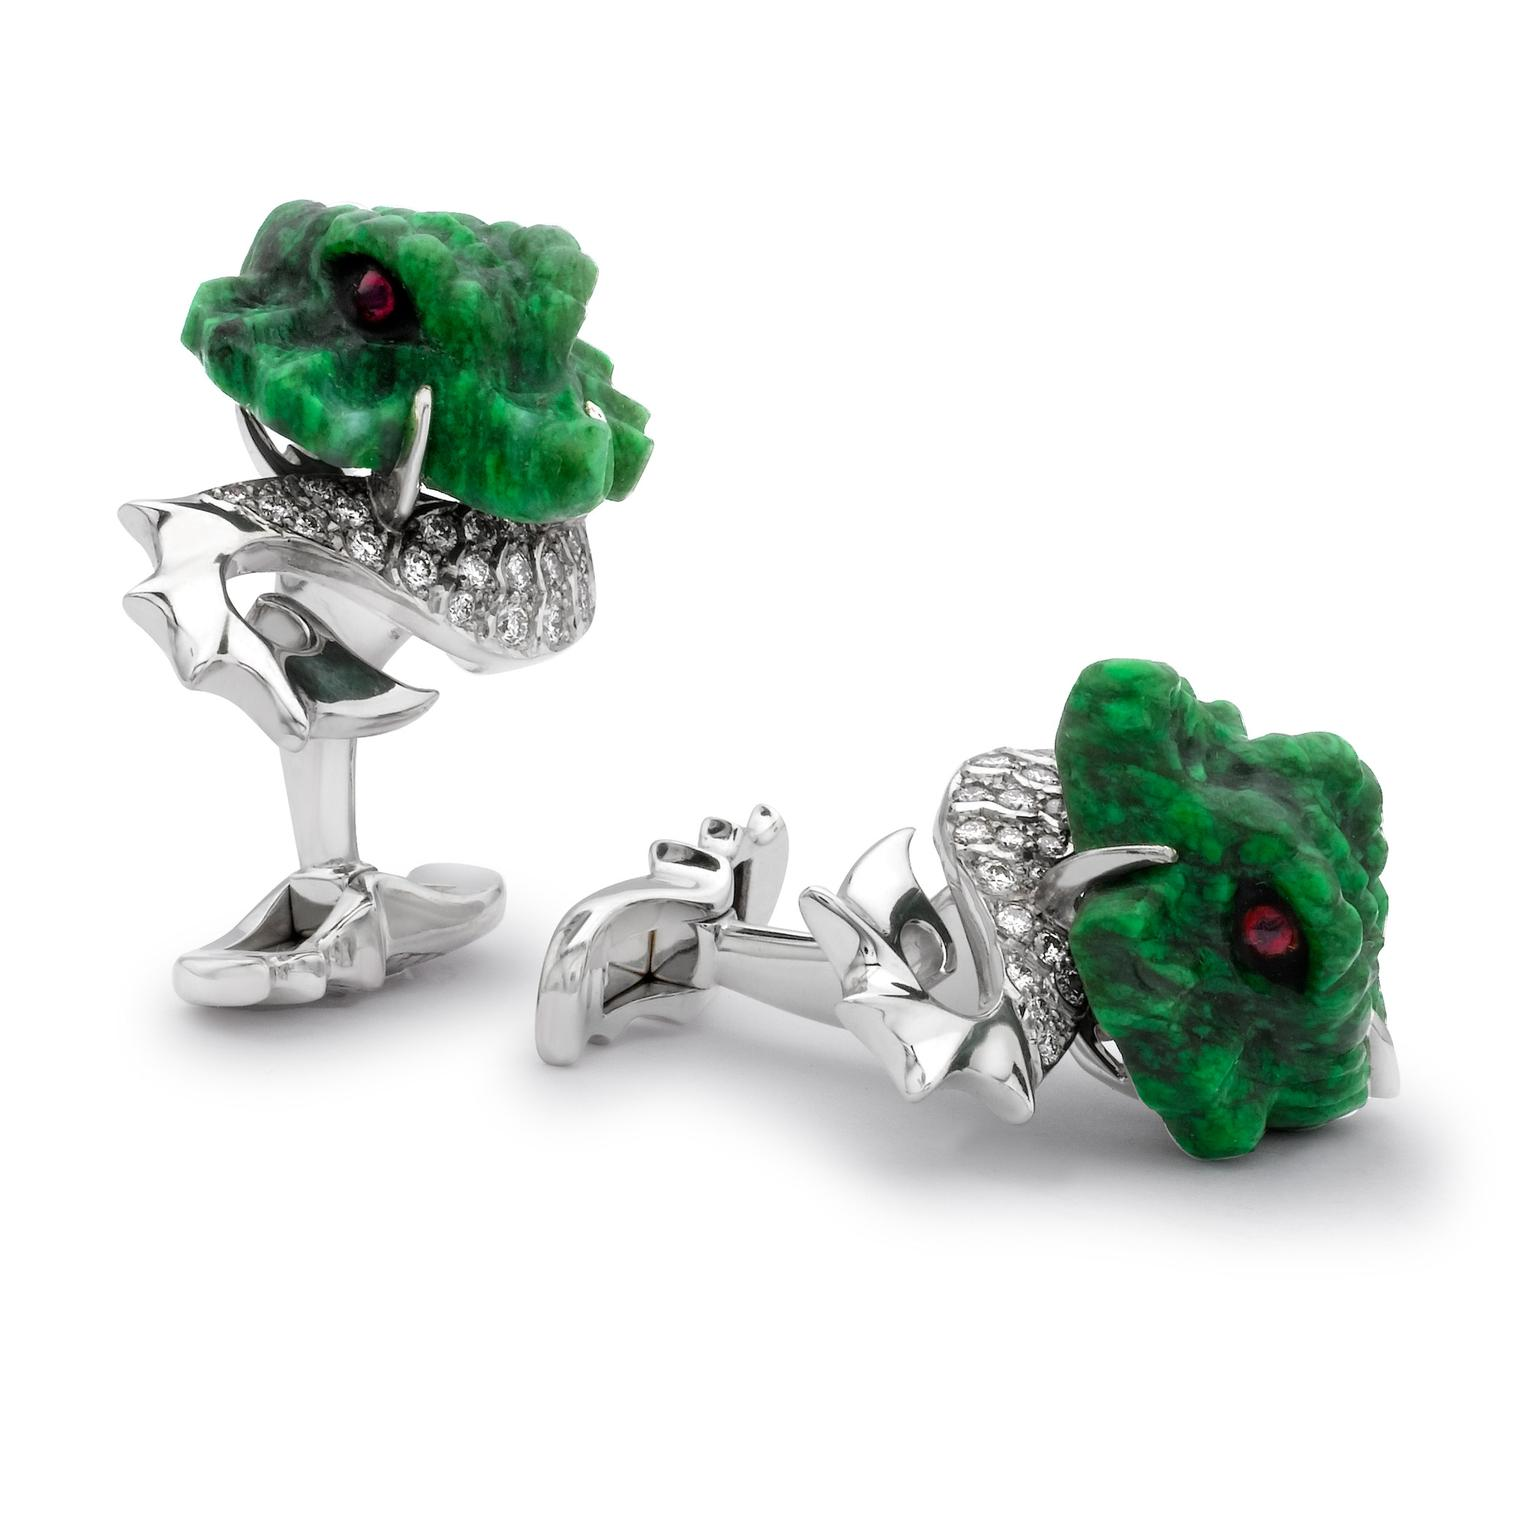 David-Marshall-Dragon-Cufflinks-Zoom